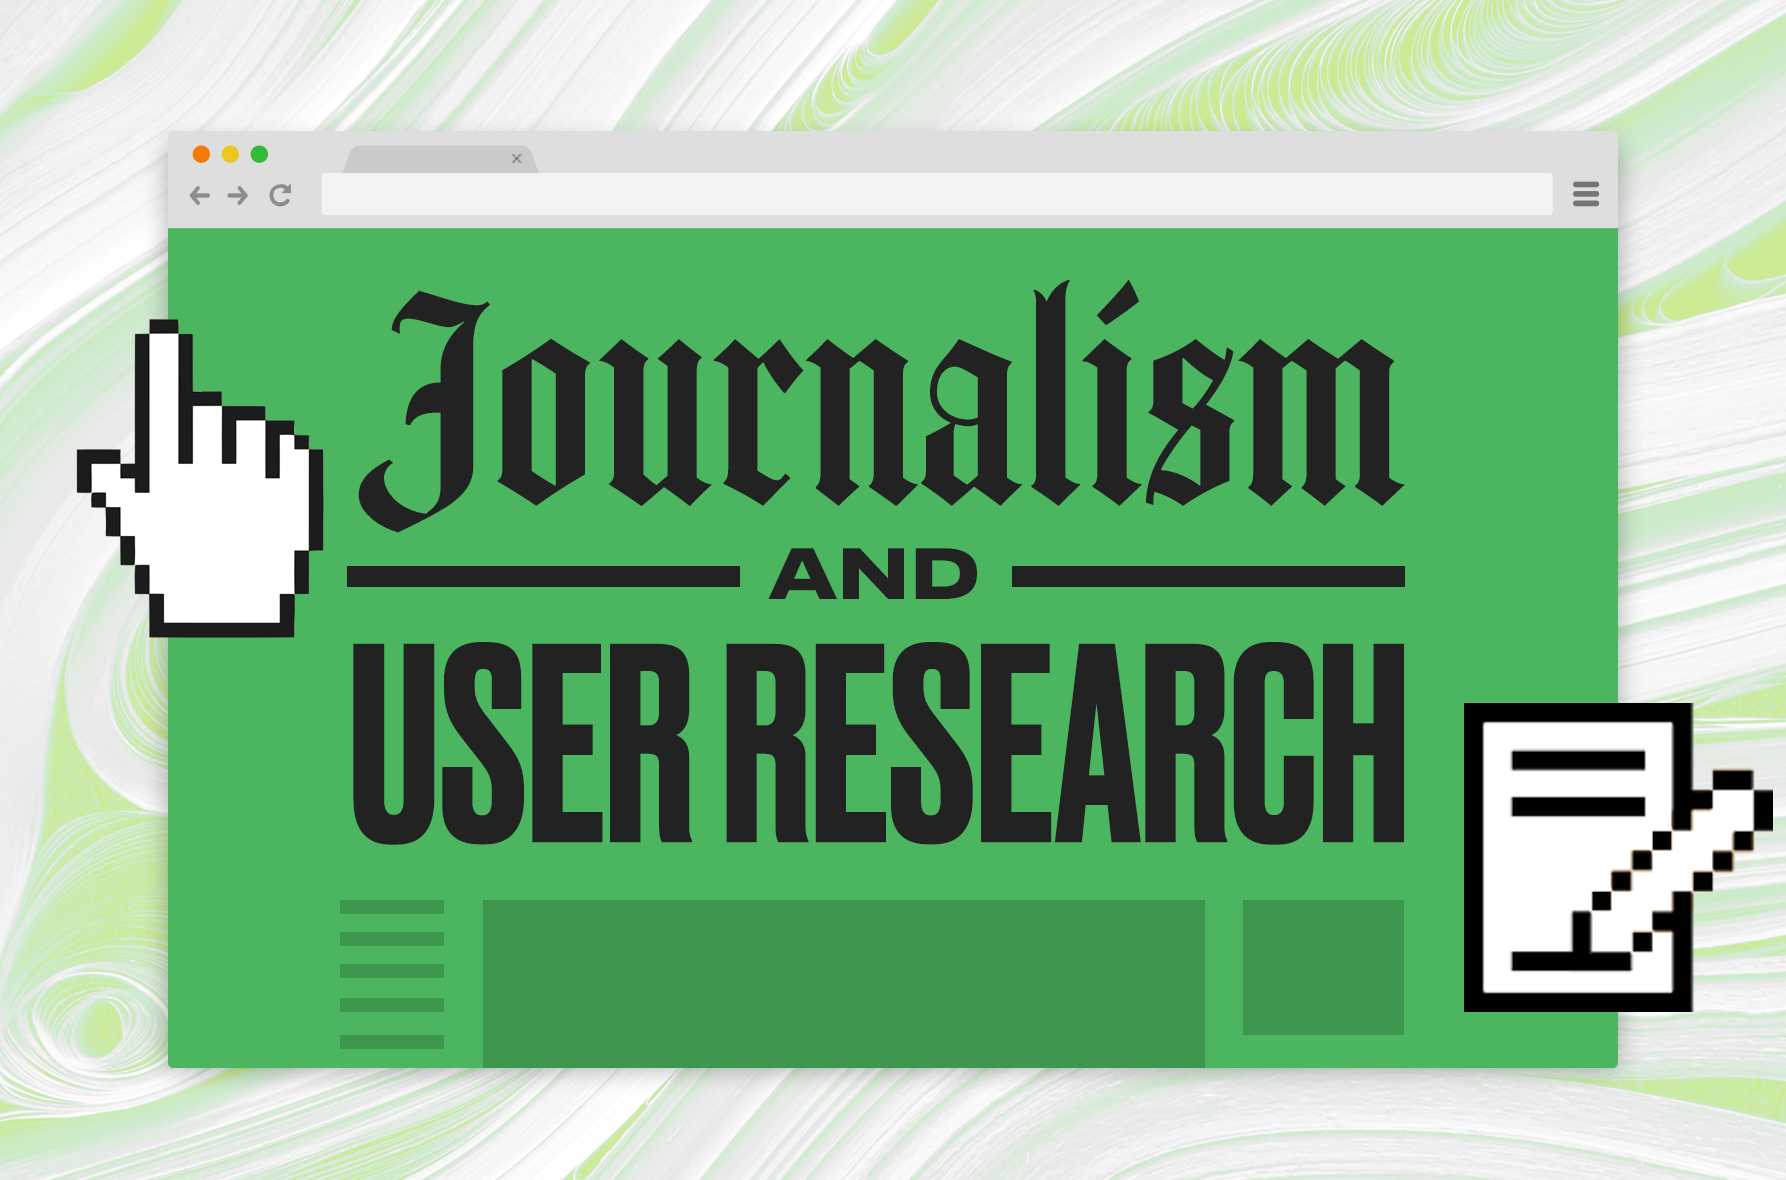 Graphic image for blog post on the journalism and UX research relationship